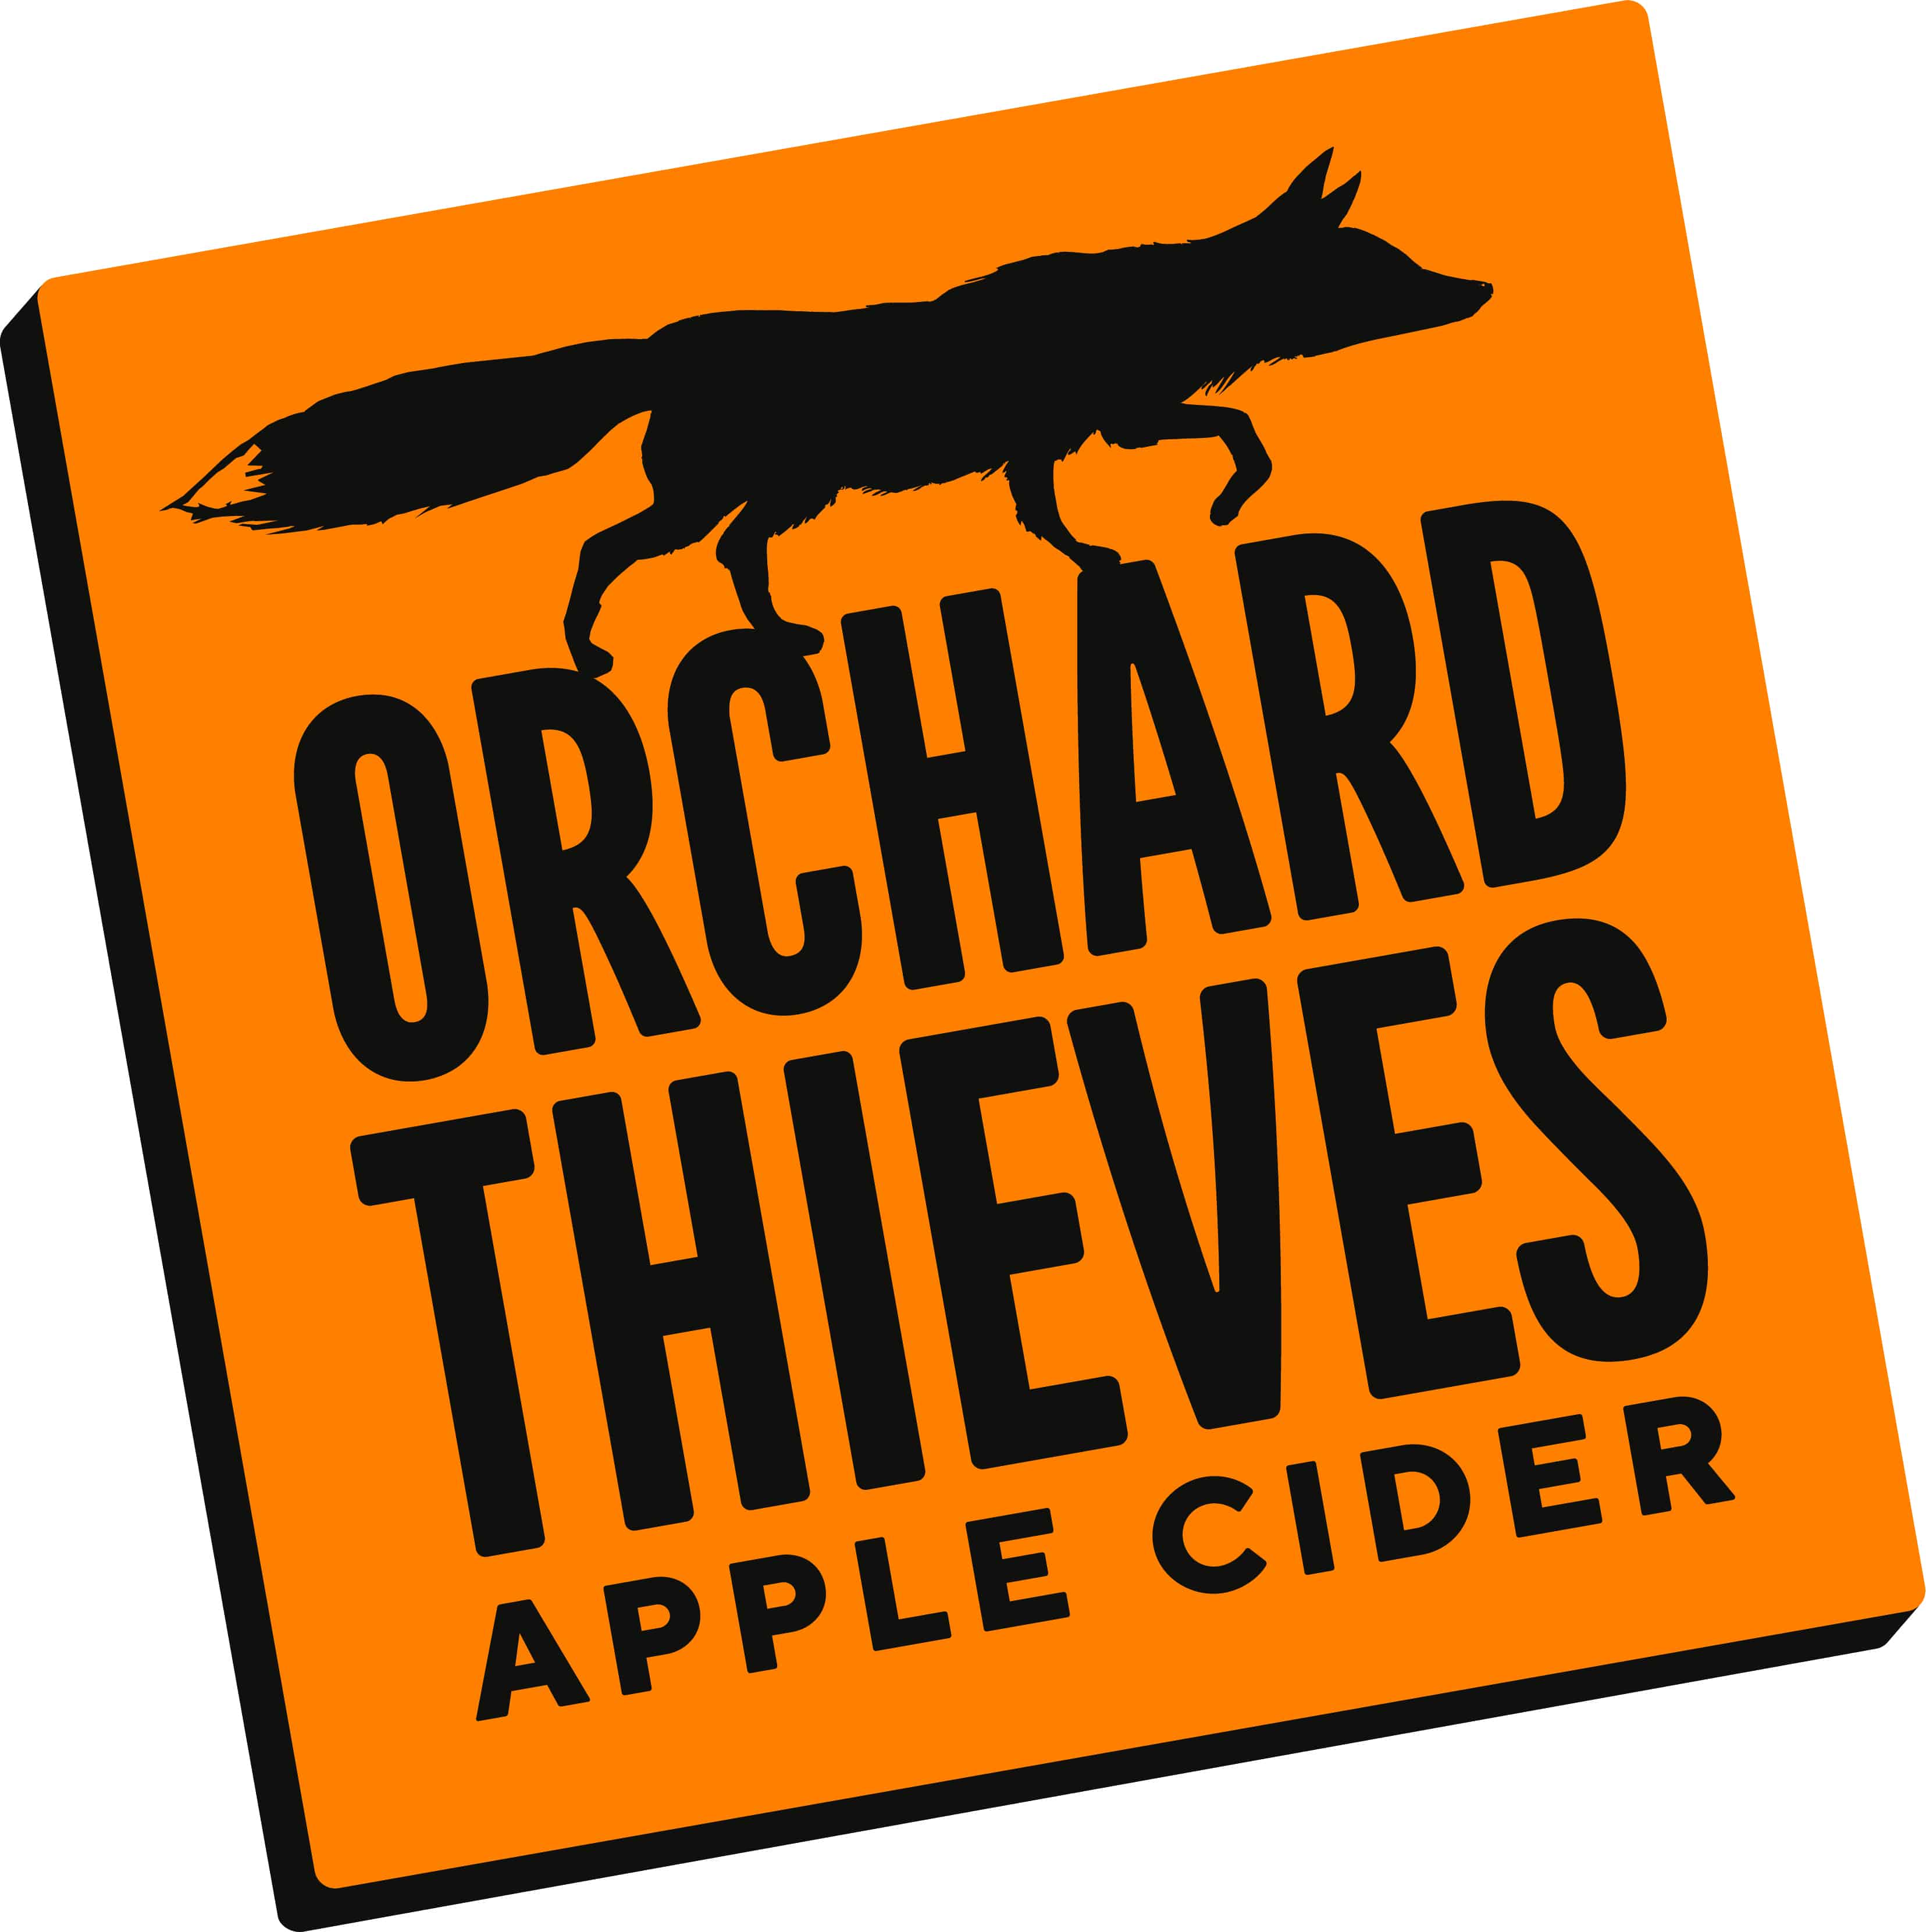 Orchard Thieves new Logo